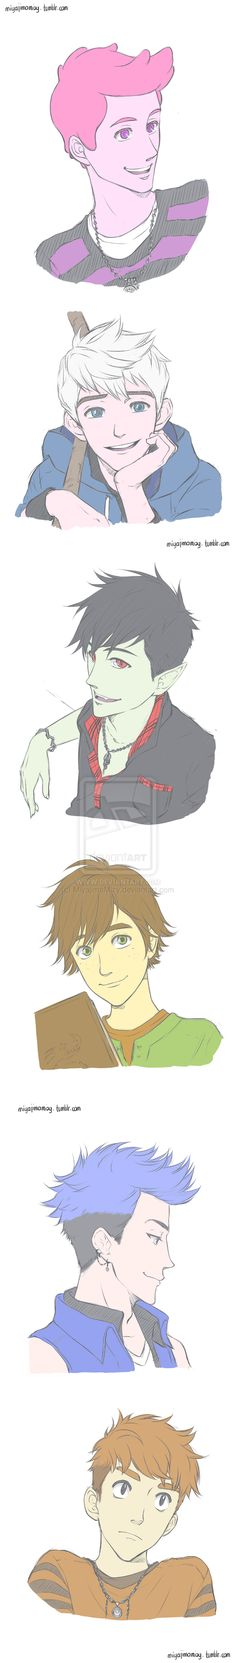 My favourite boys by MiyajimaMizy.deviantart.com on @deviantART